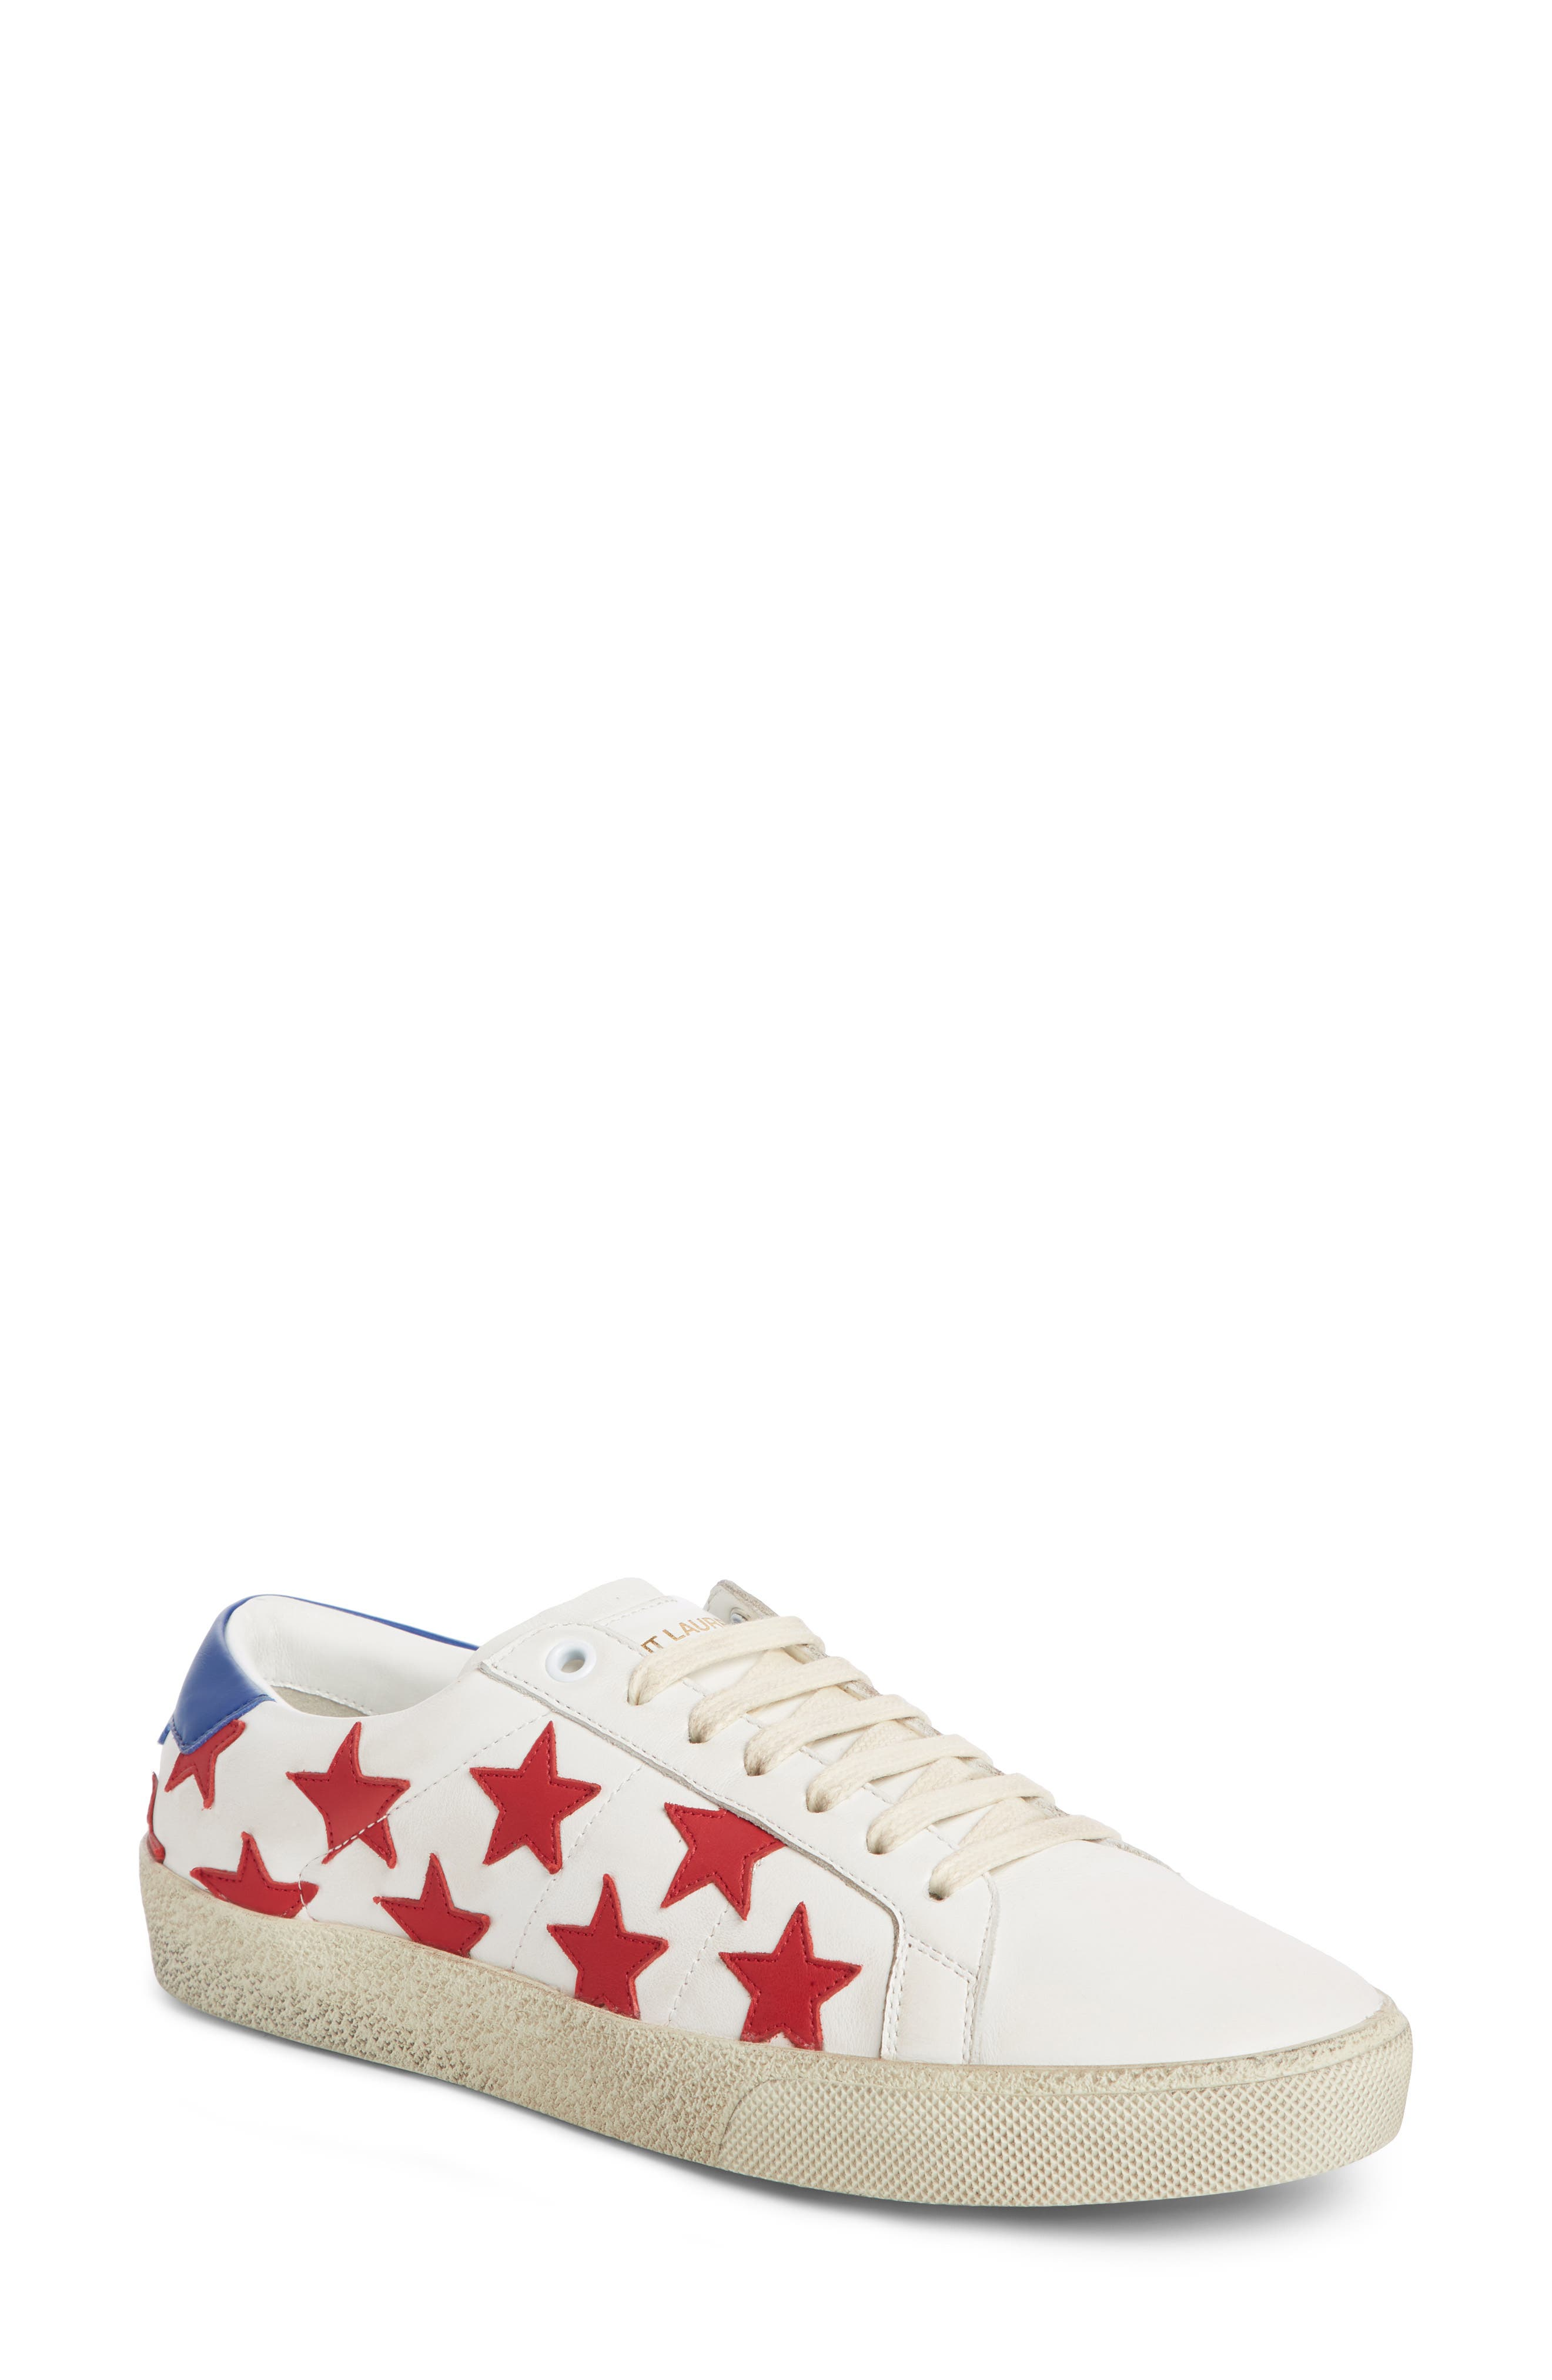 Classic Court Sneaker,                             Main thumbnail 1, color,                             WHITE/ RED